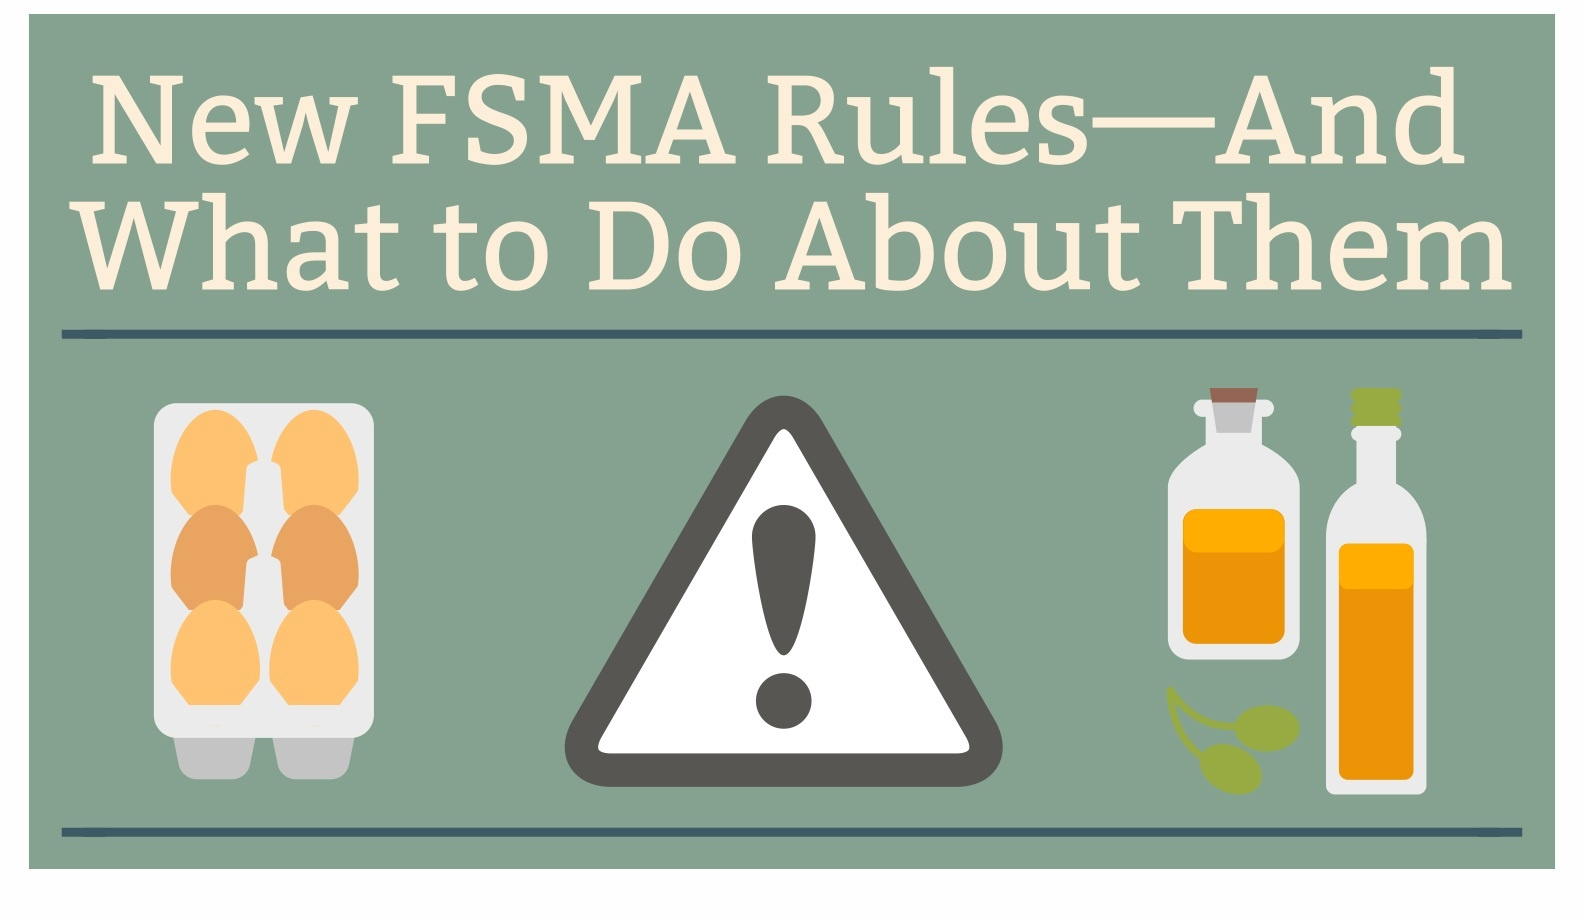 New FSMA Regulations — And What to Do About Them